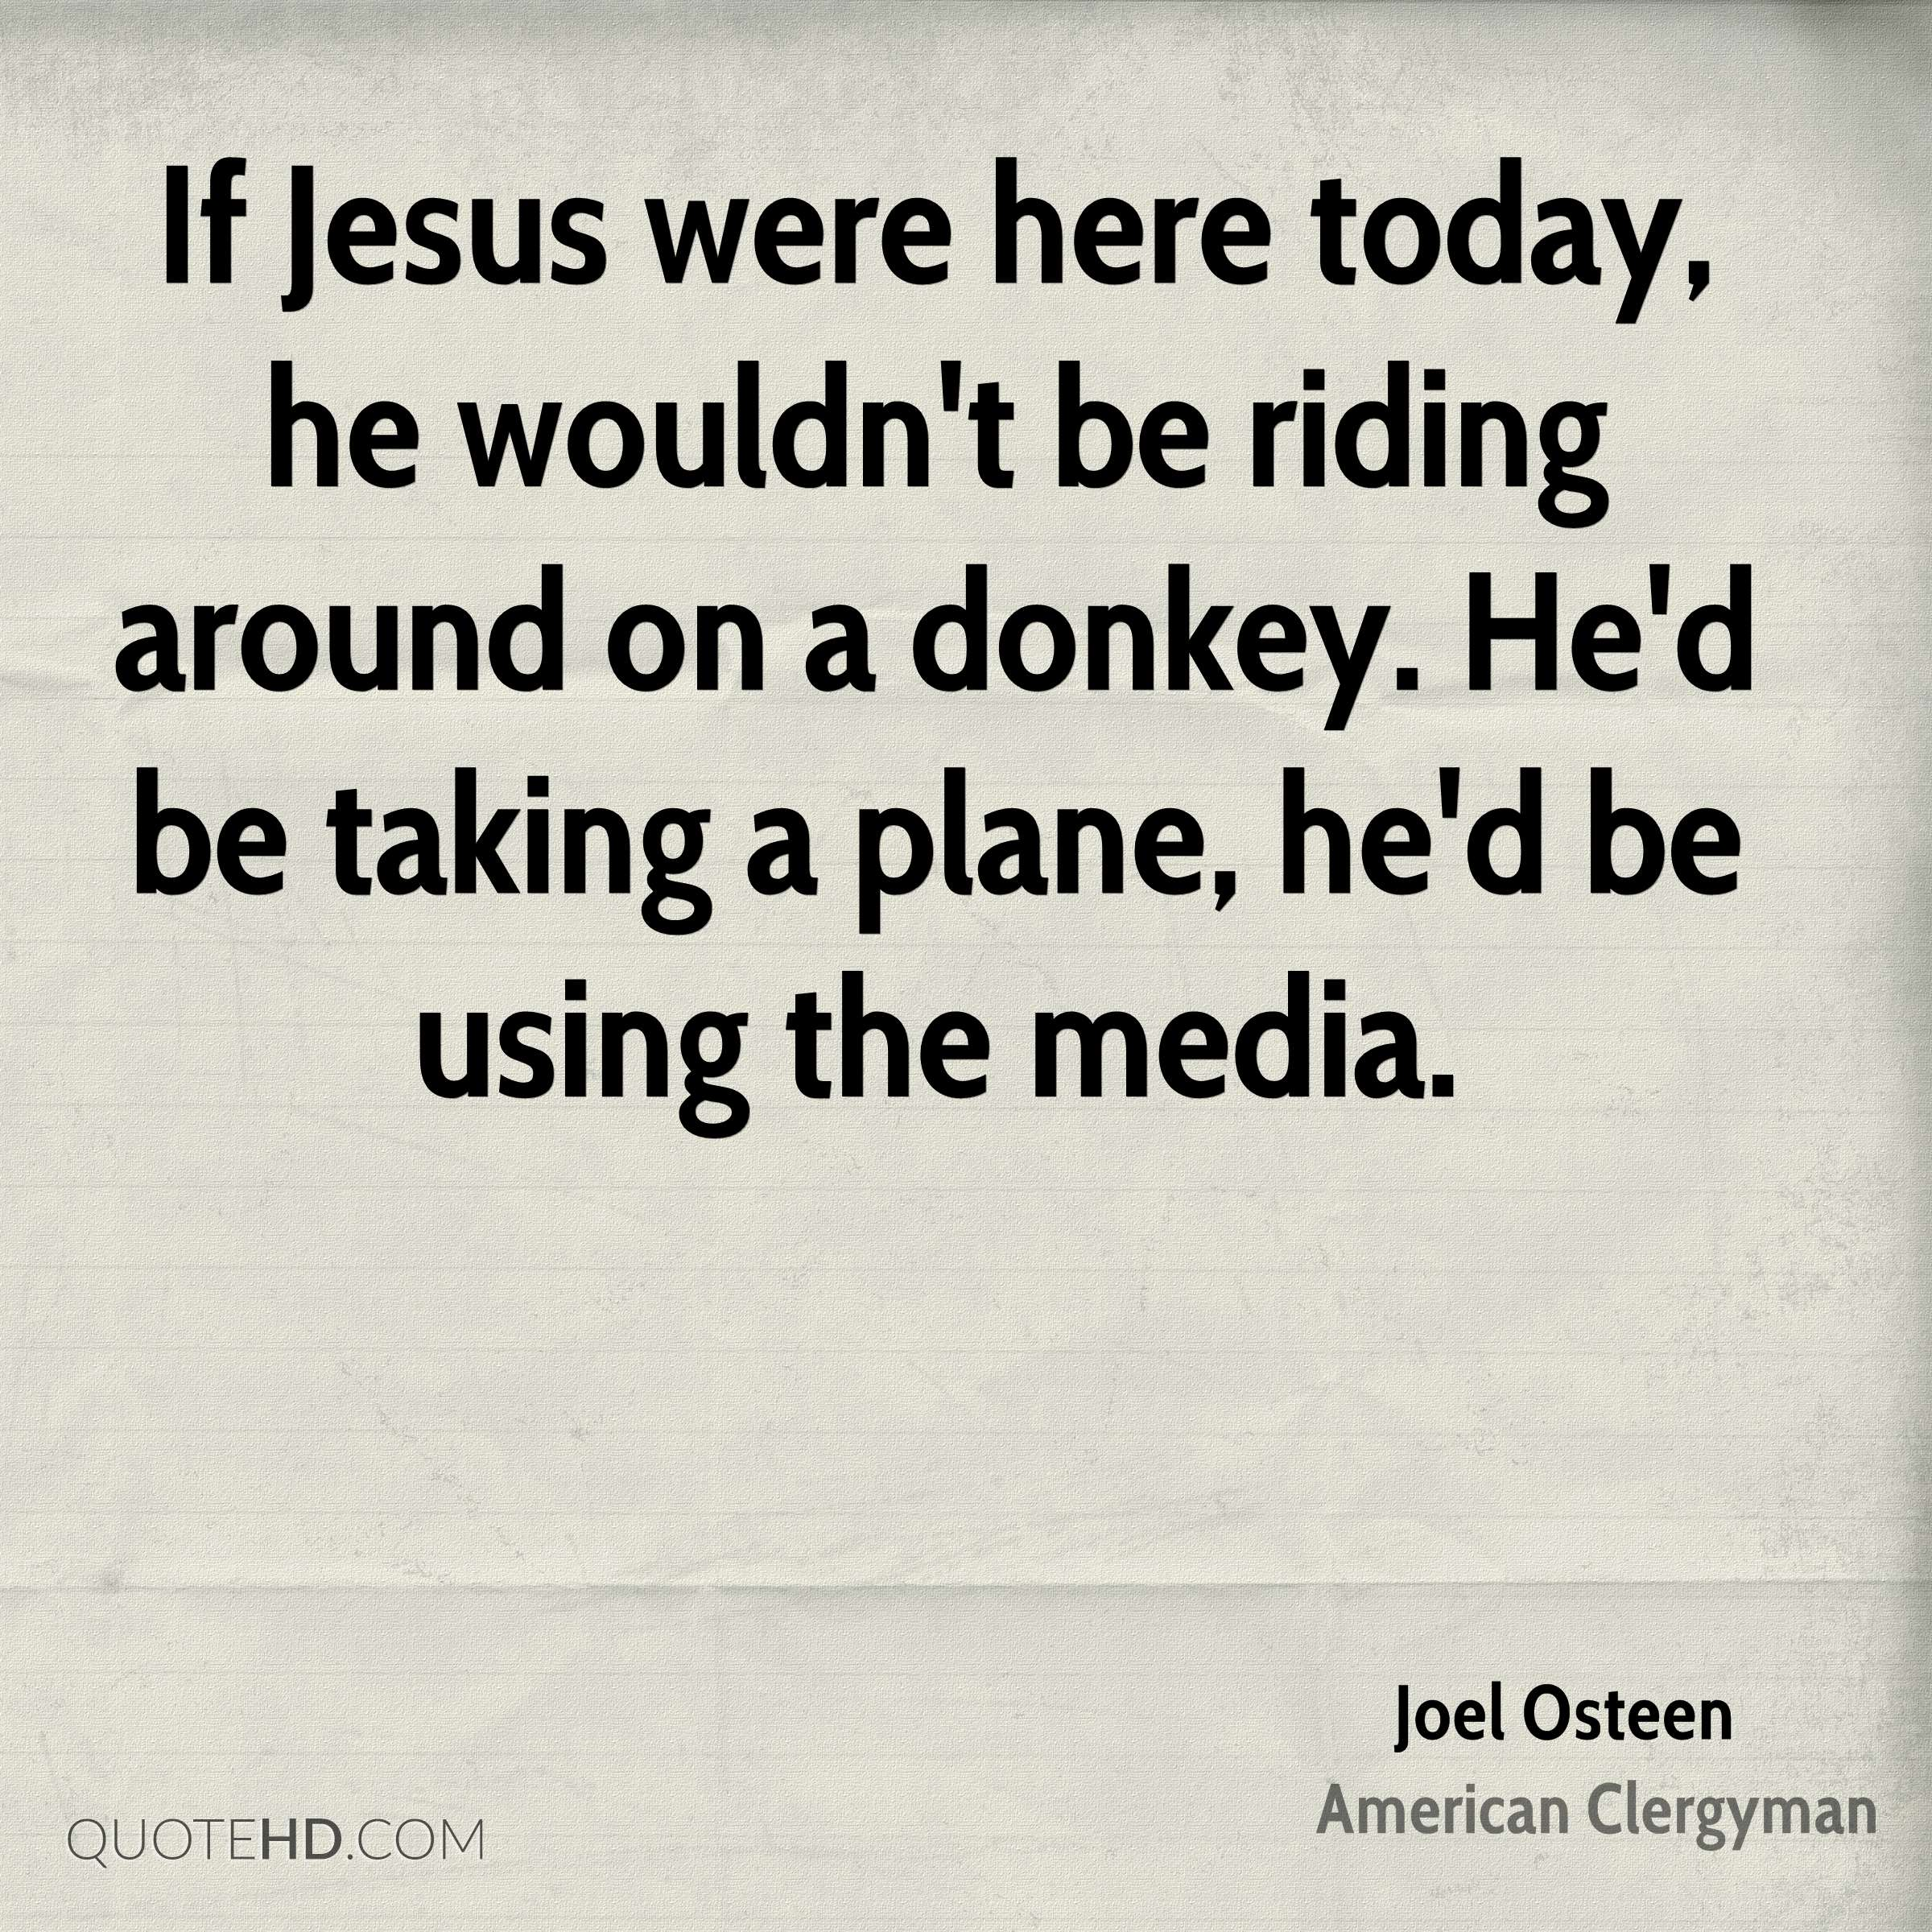 If Jesus were here today, he wouldn't be riding around on a donkey. He'd be taking a plane, he'd be using the media.